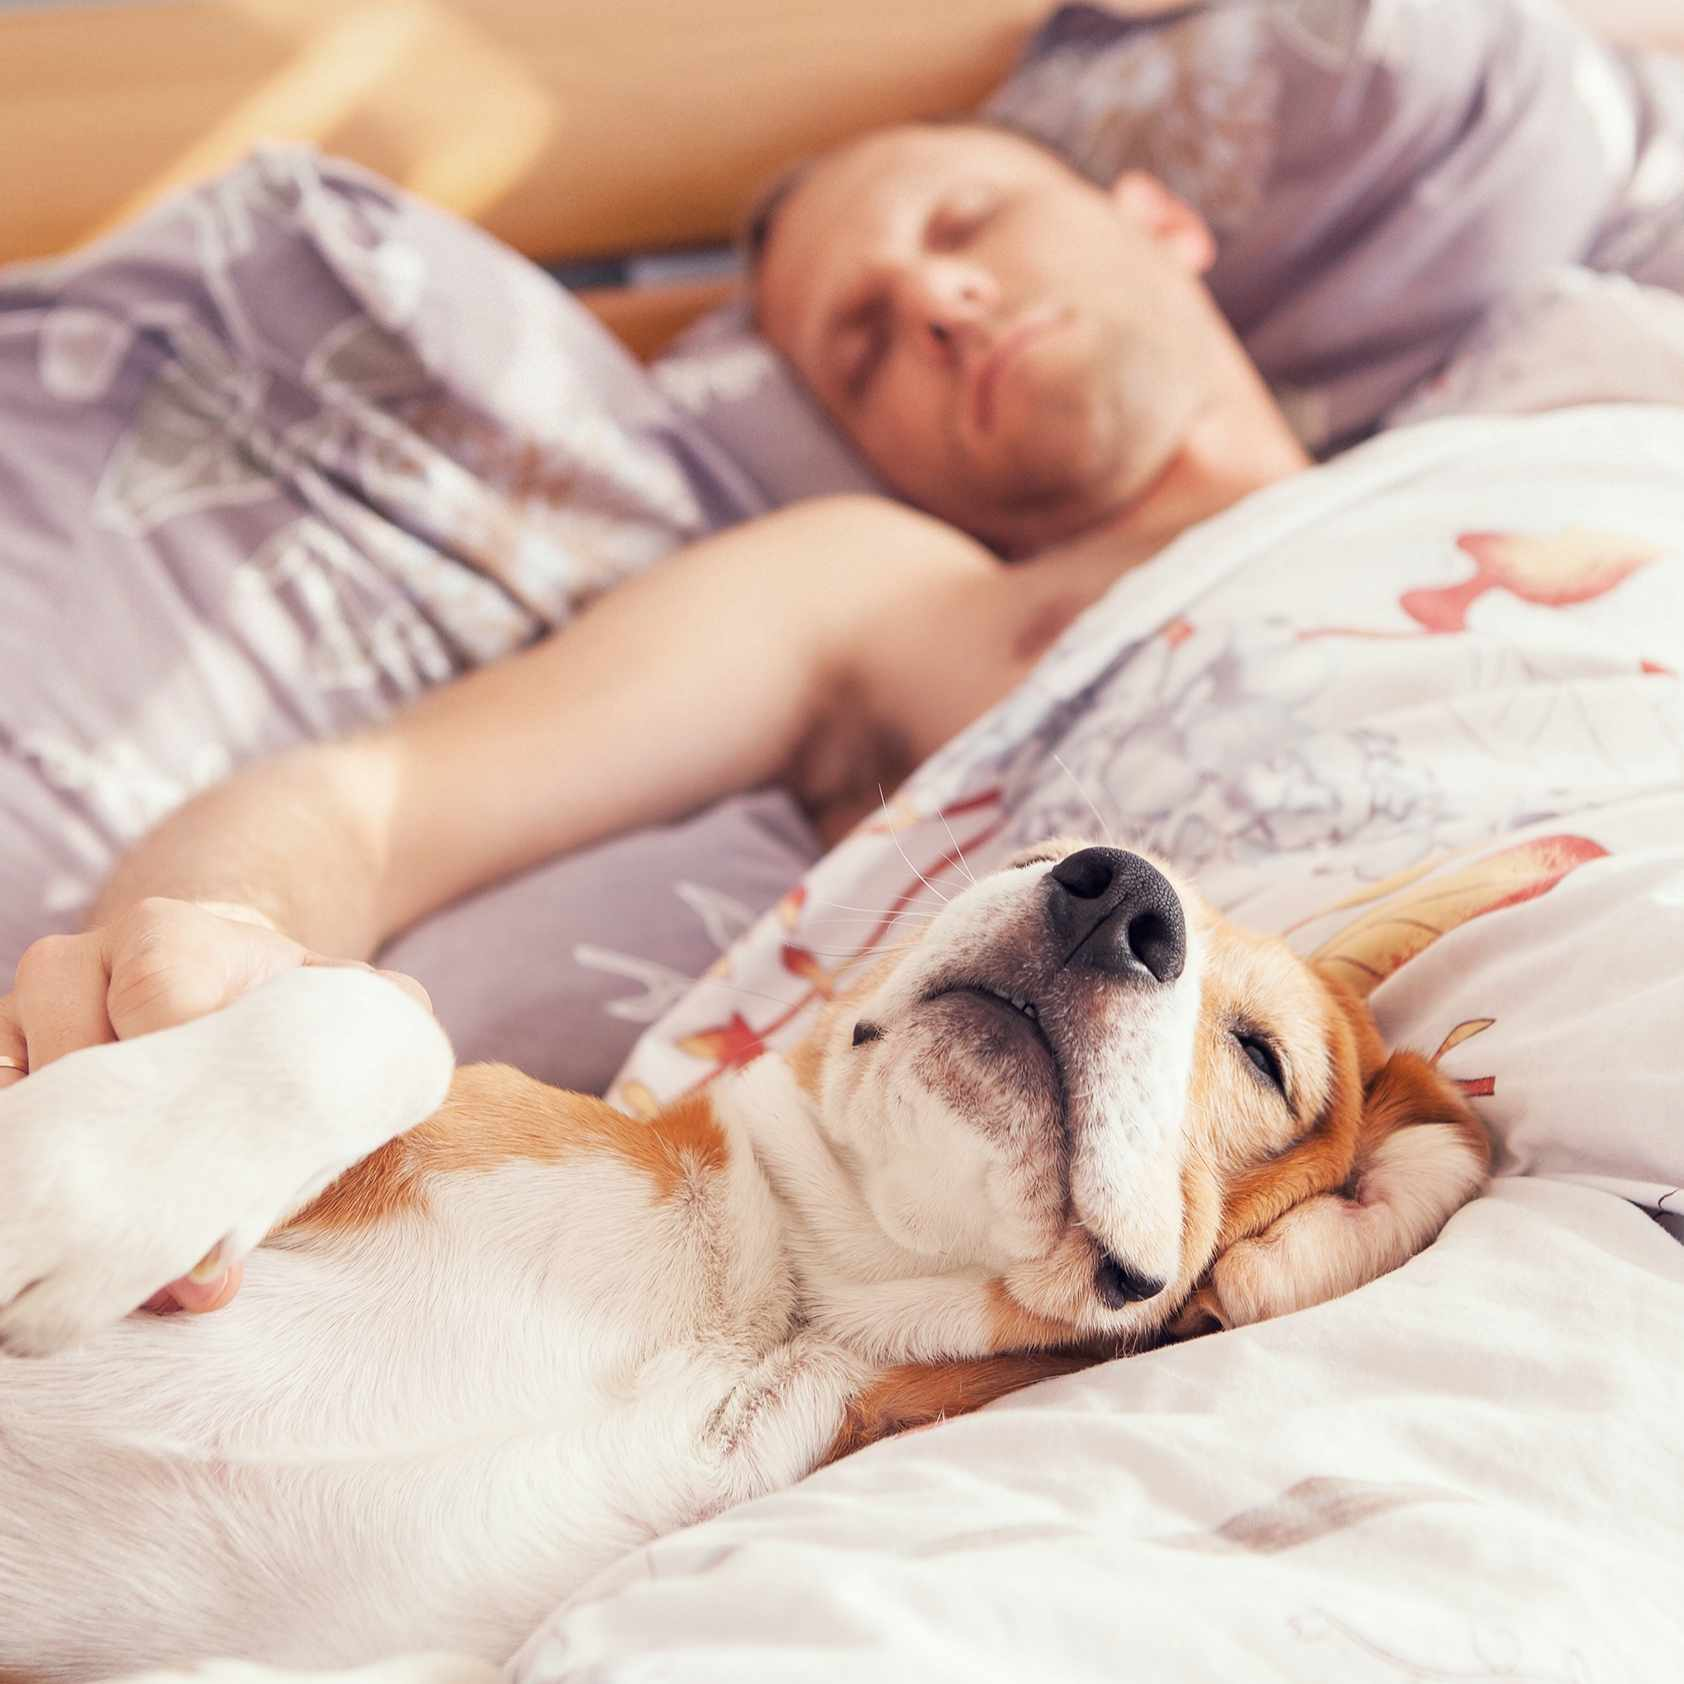 two pets, a cat and a dog, sleeping on someone's bed with pillows